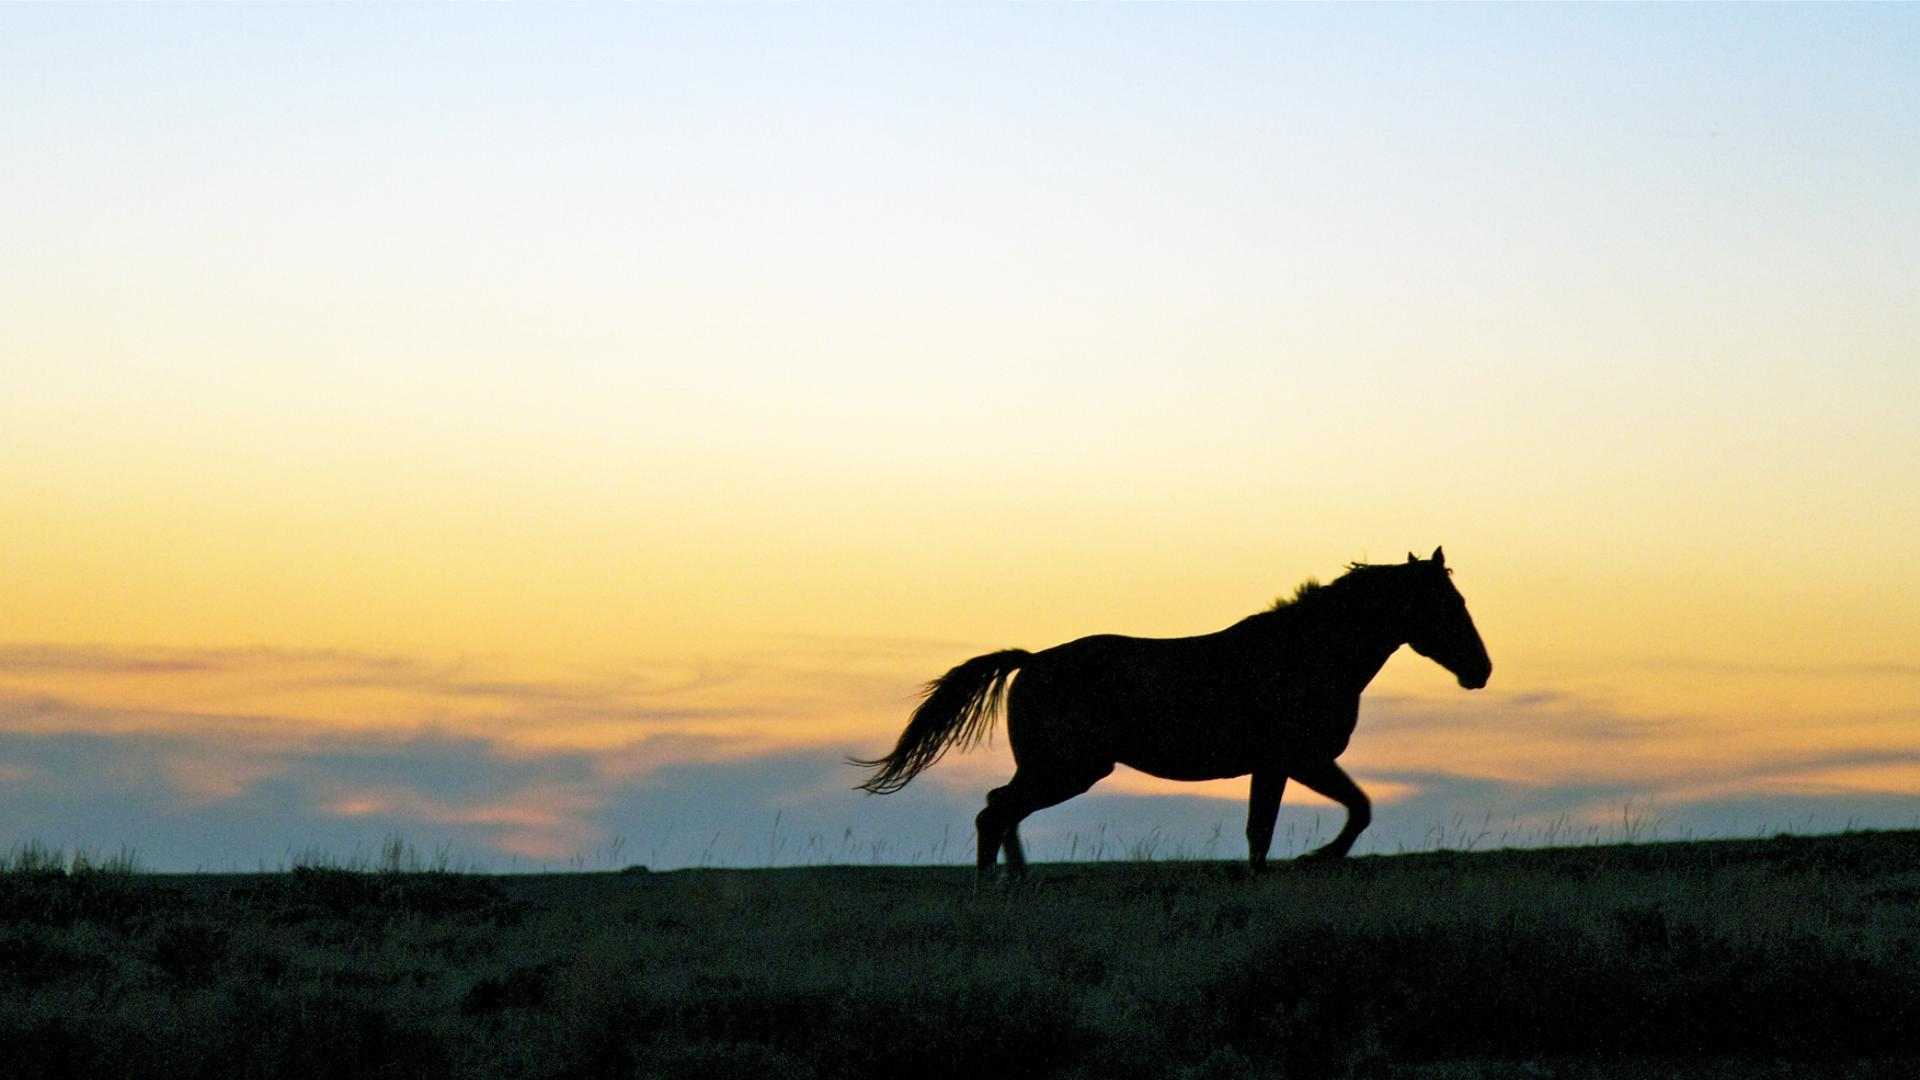 The Controversial Plan to Kill 45,000 Wild Horses to Make Room for Cattle Farming  (MUNCHIES,SEP 14 2016)